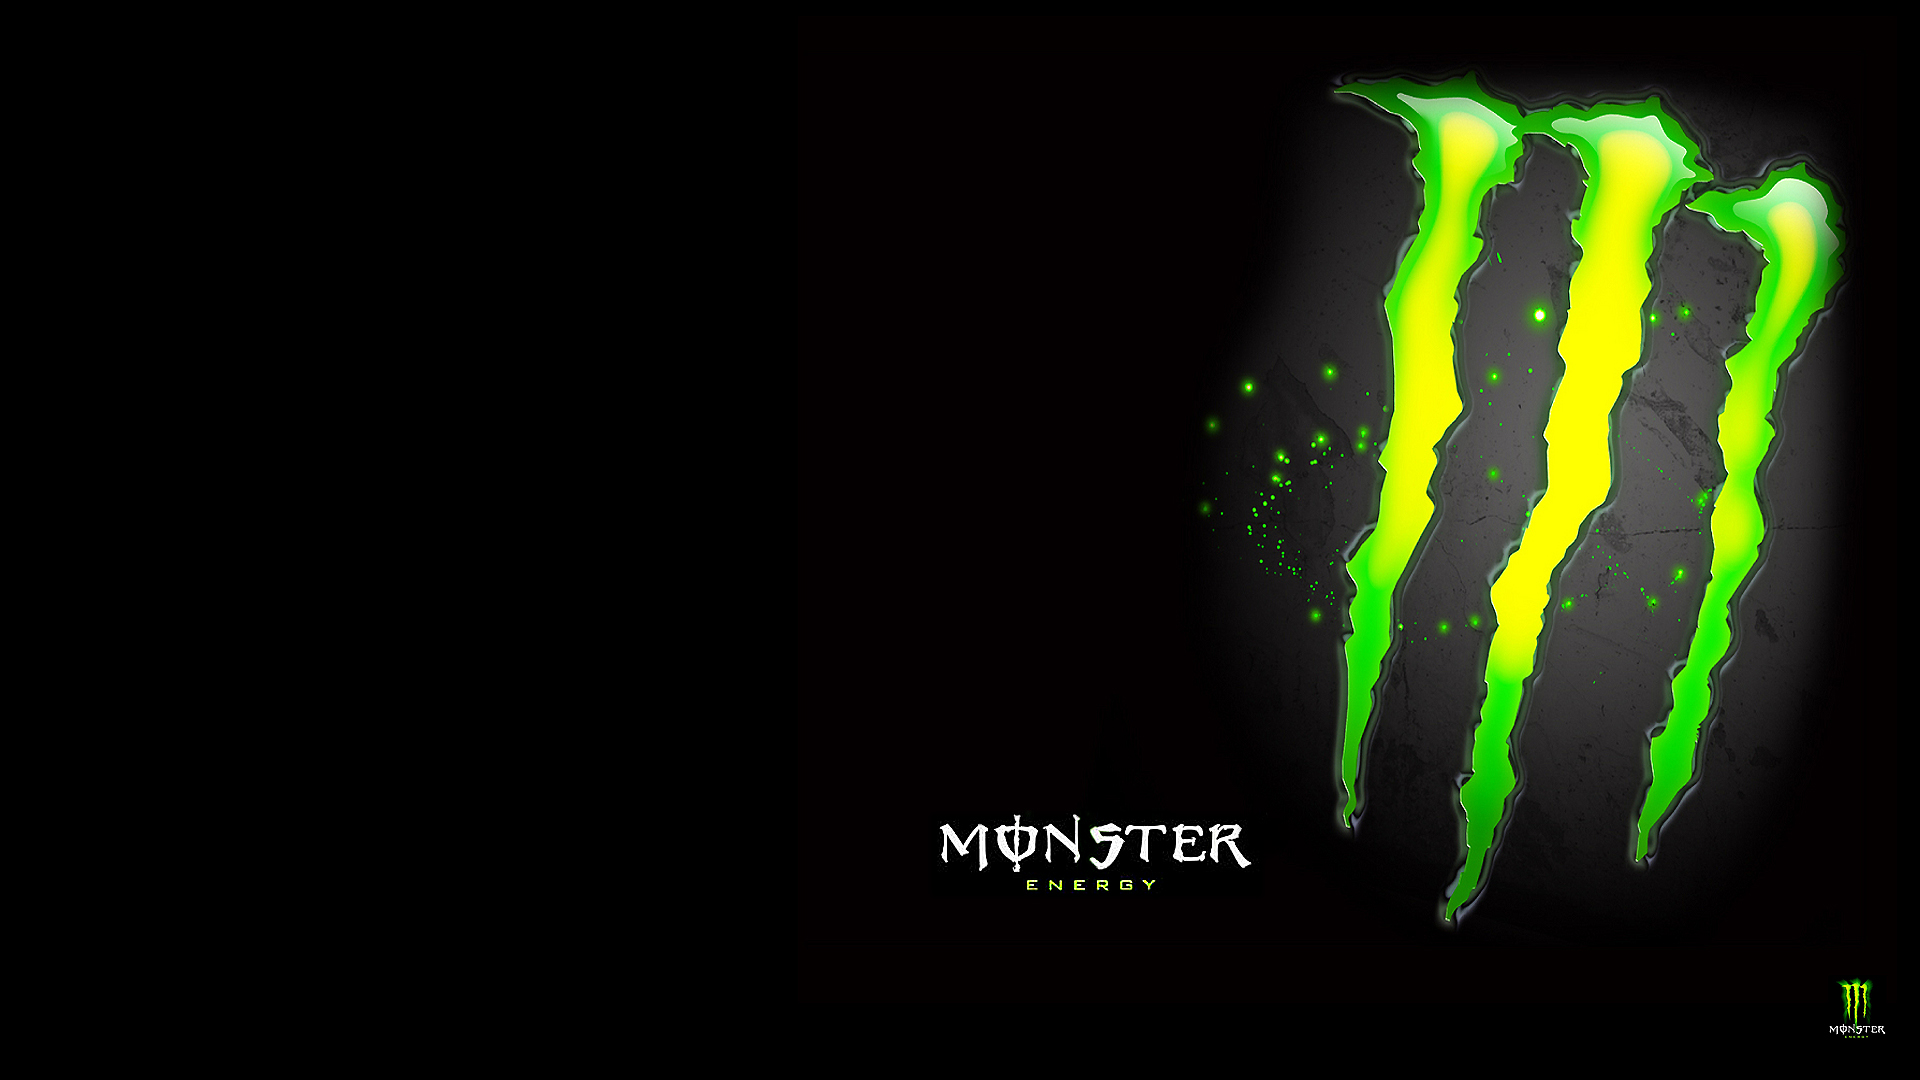 Monster Energy Digital Art 1920x1080